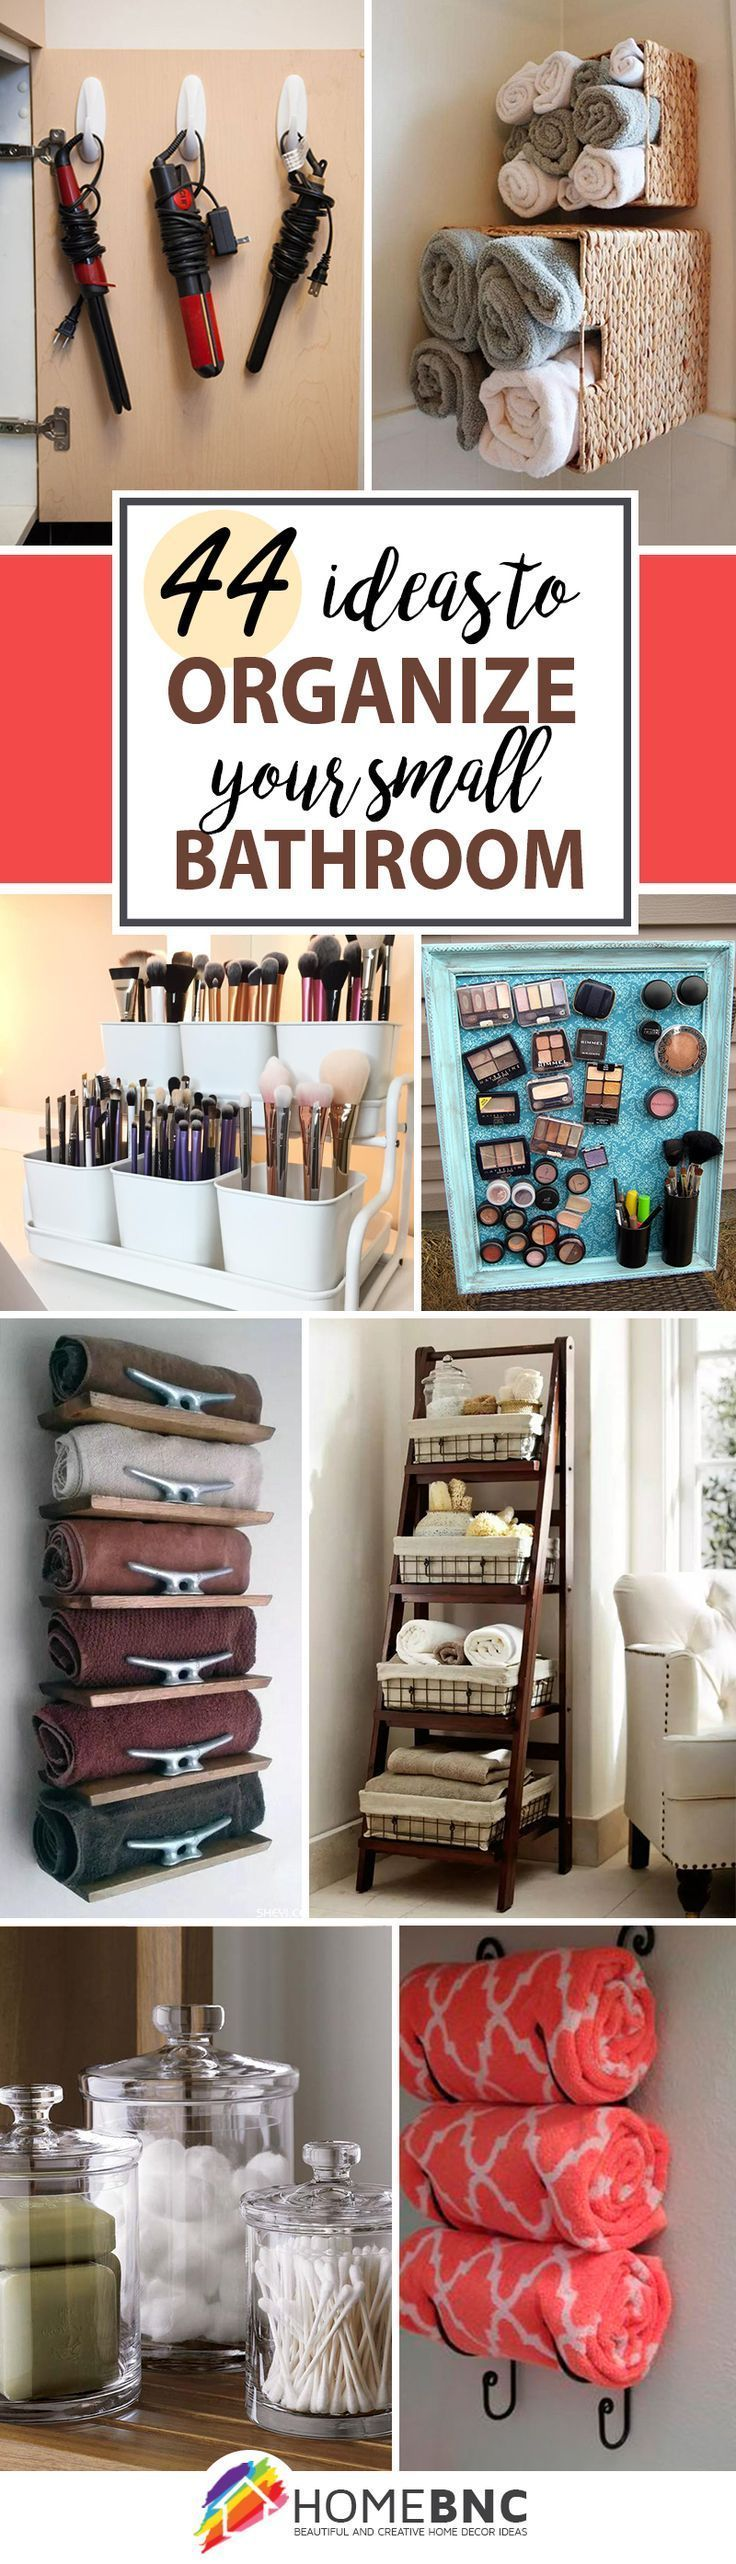 44 Unique Storage Ideas For A Small Bathroom To Make Yours Bigger Extraordinary Storage Ideas For Small Bathrooms Decorating Design